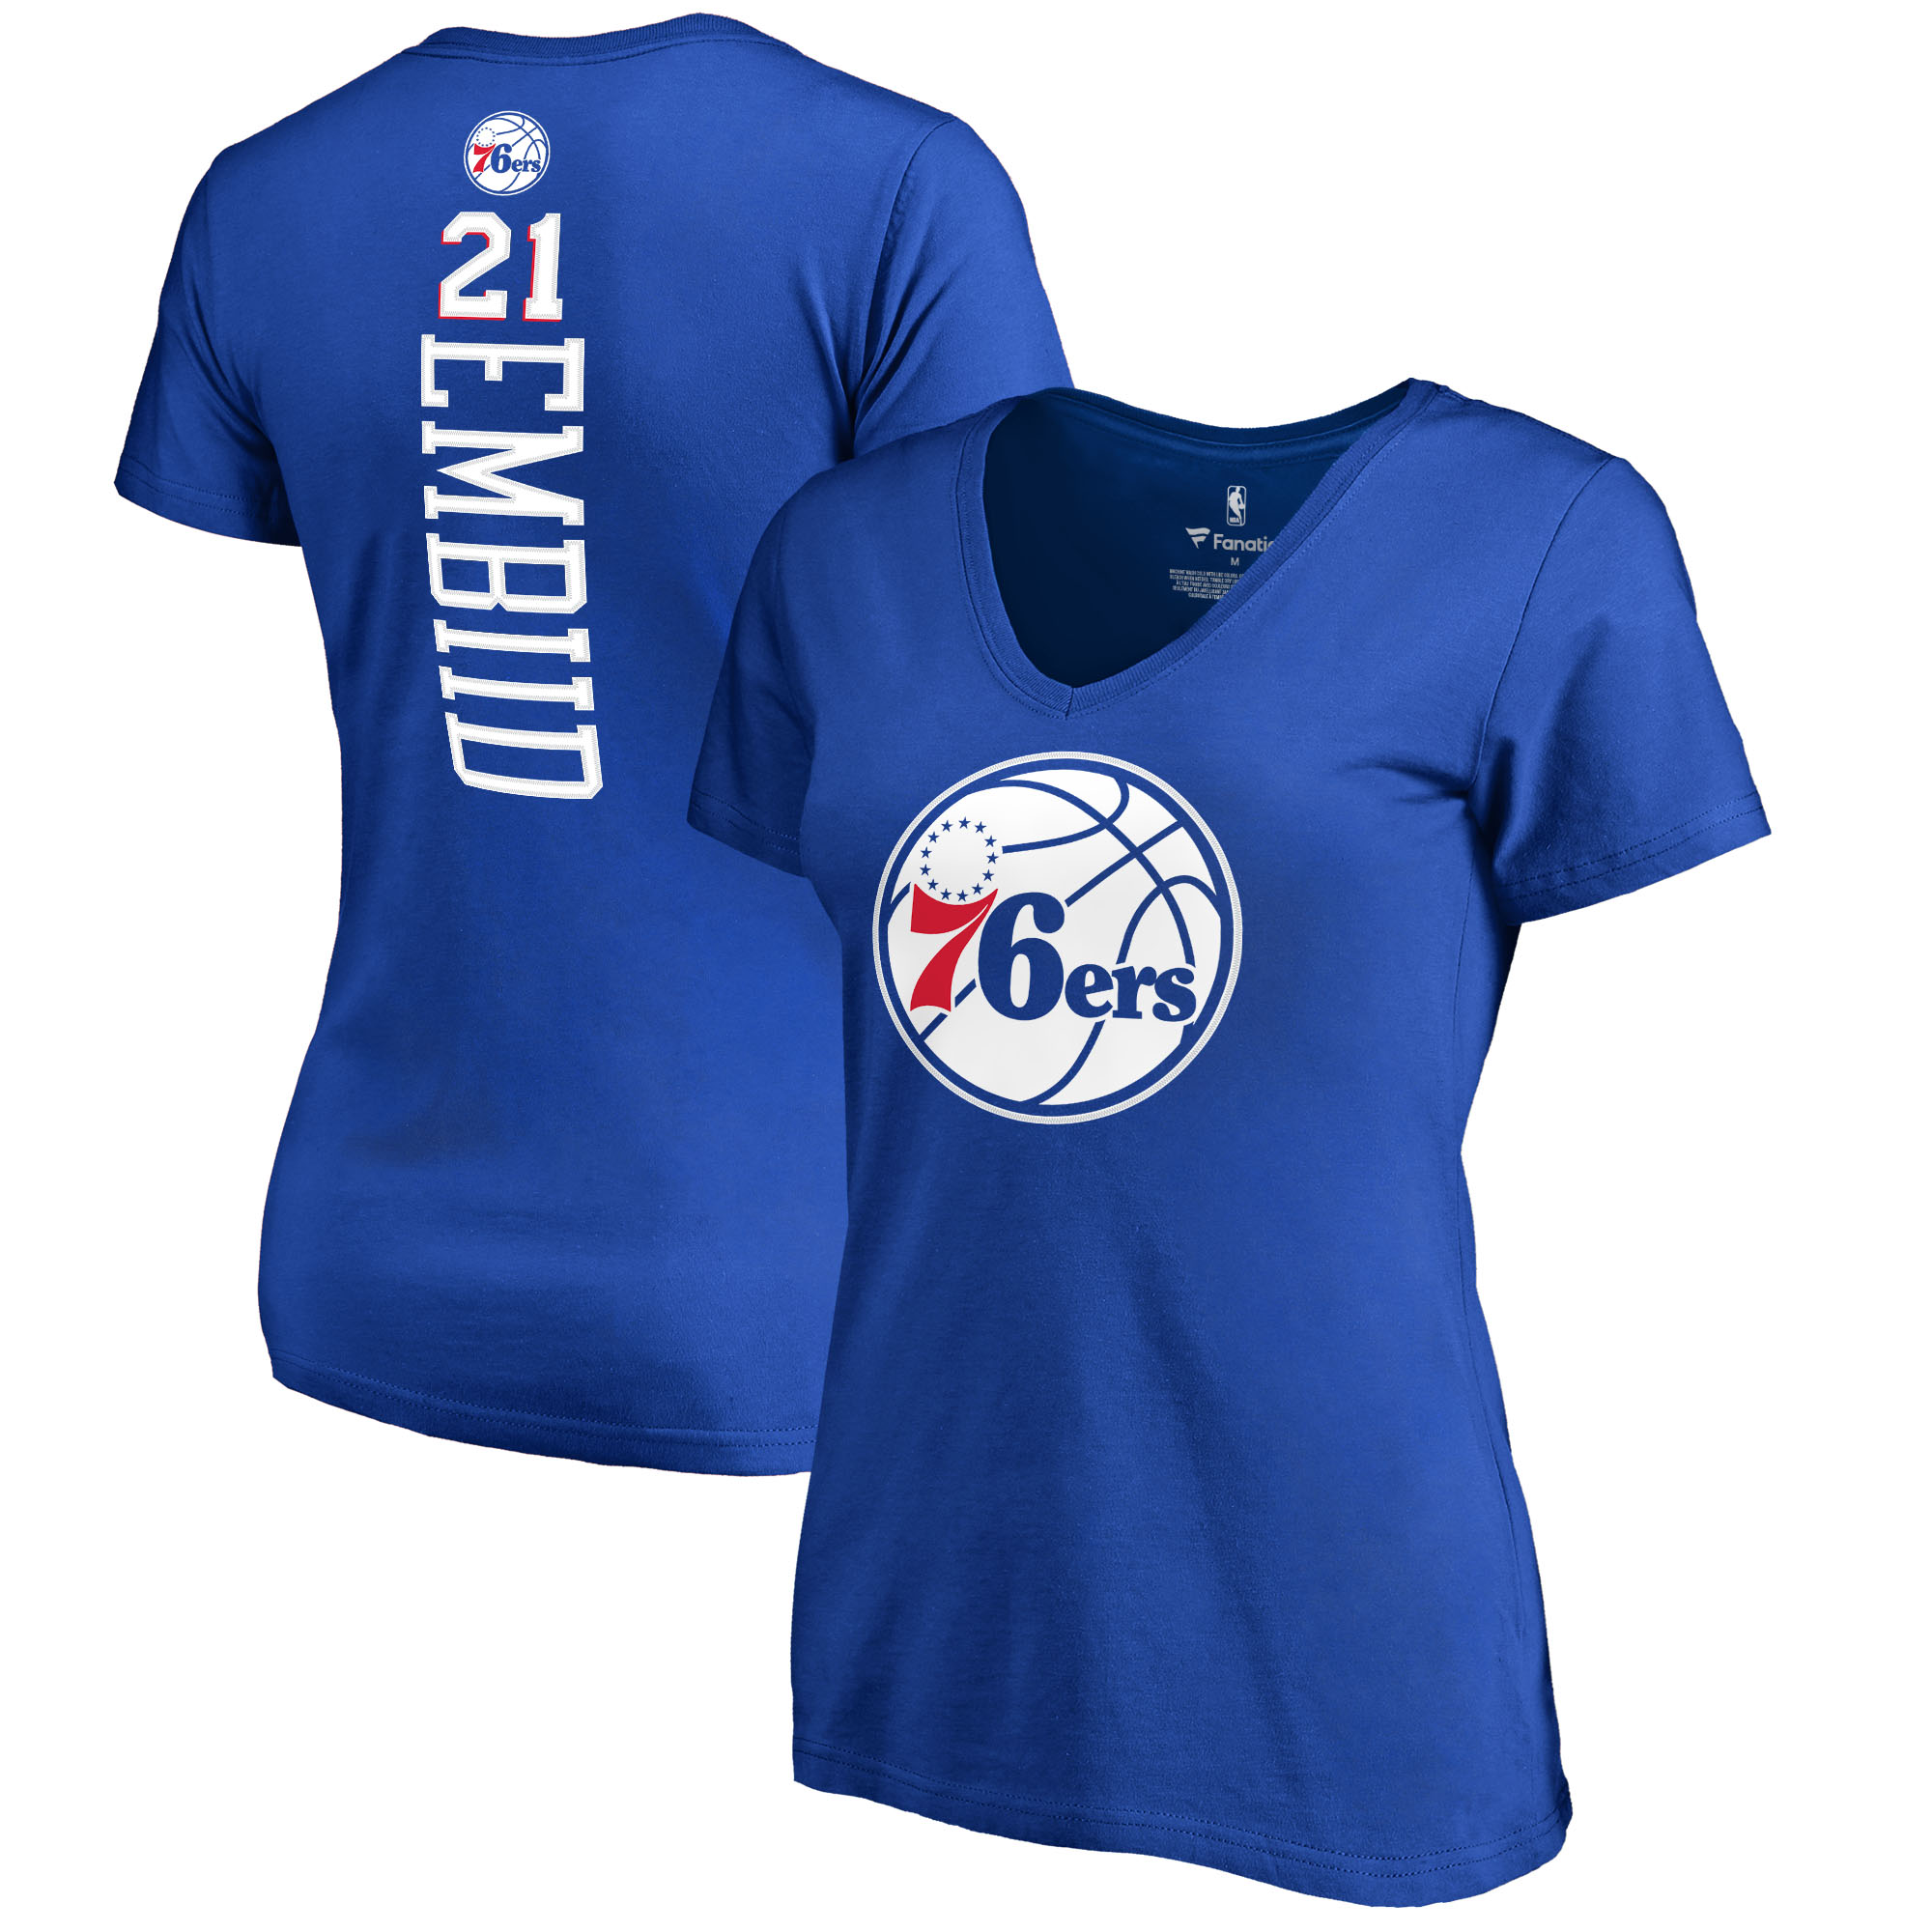 Joel Embiid Philadelphia 76ers Fanatics Branded Women's Backer Name & Number V-Neck T-Shirt - Royal